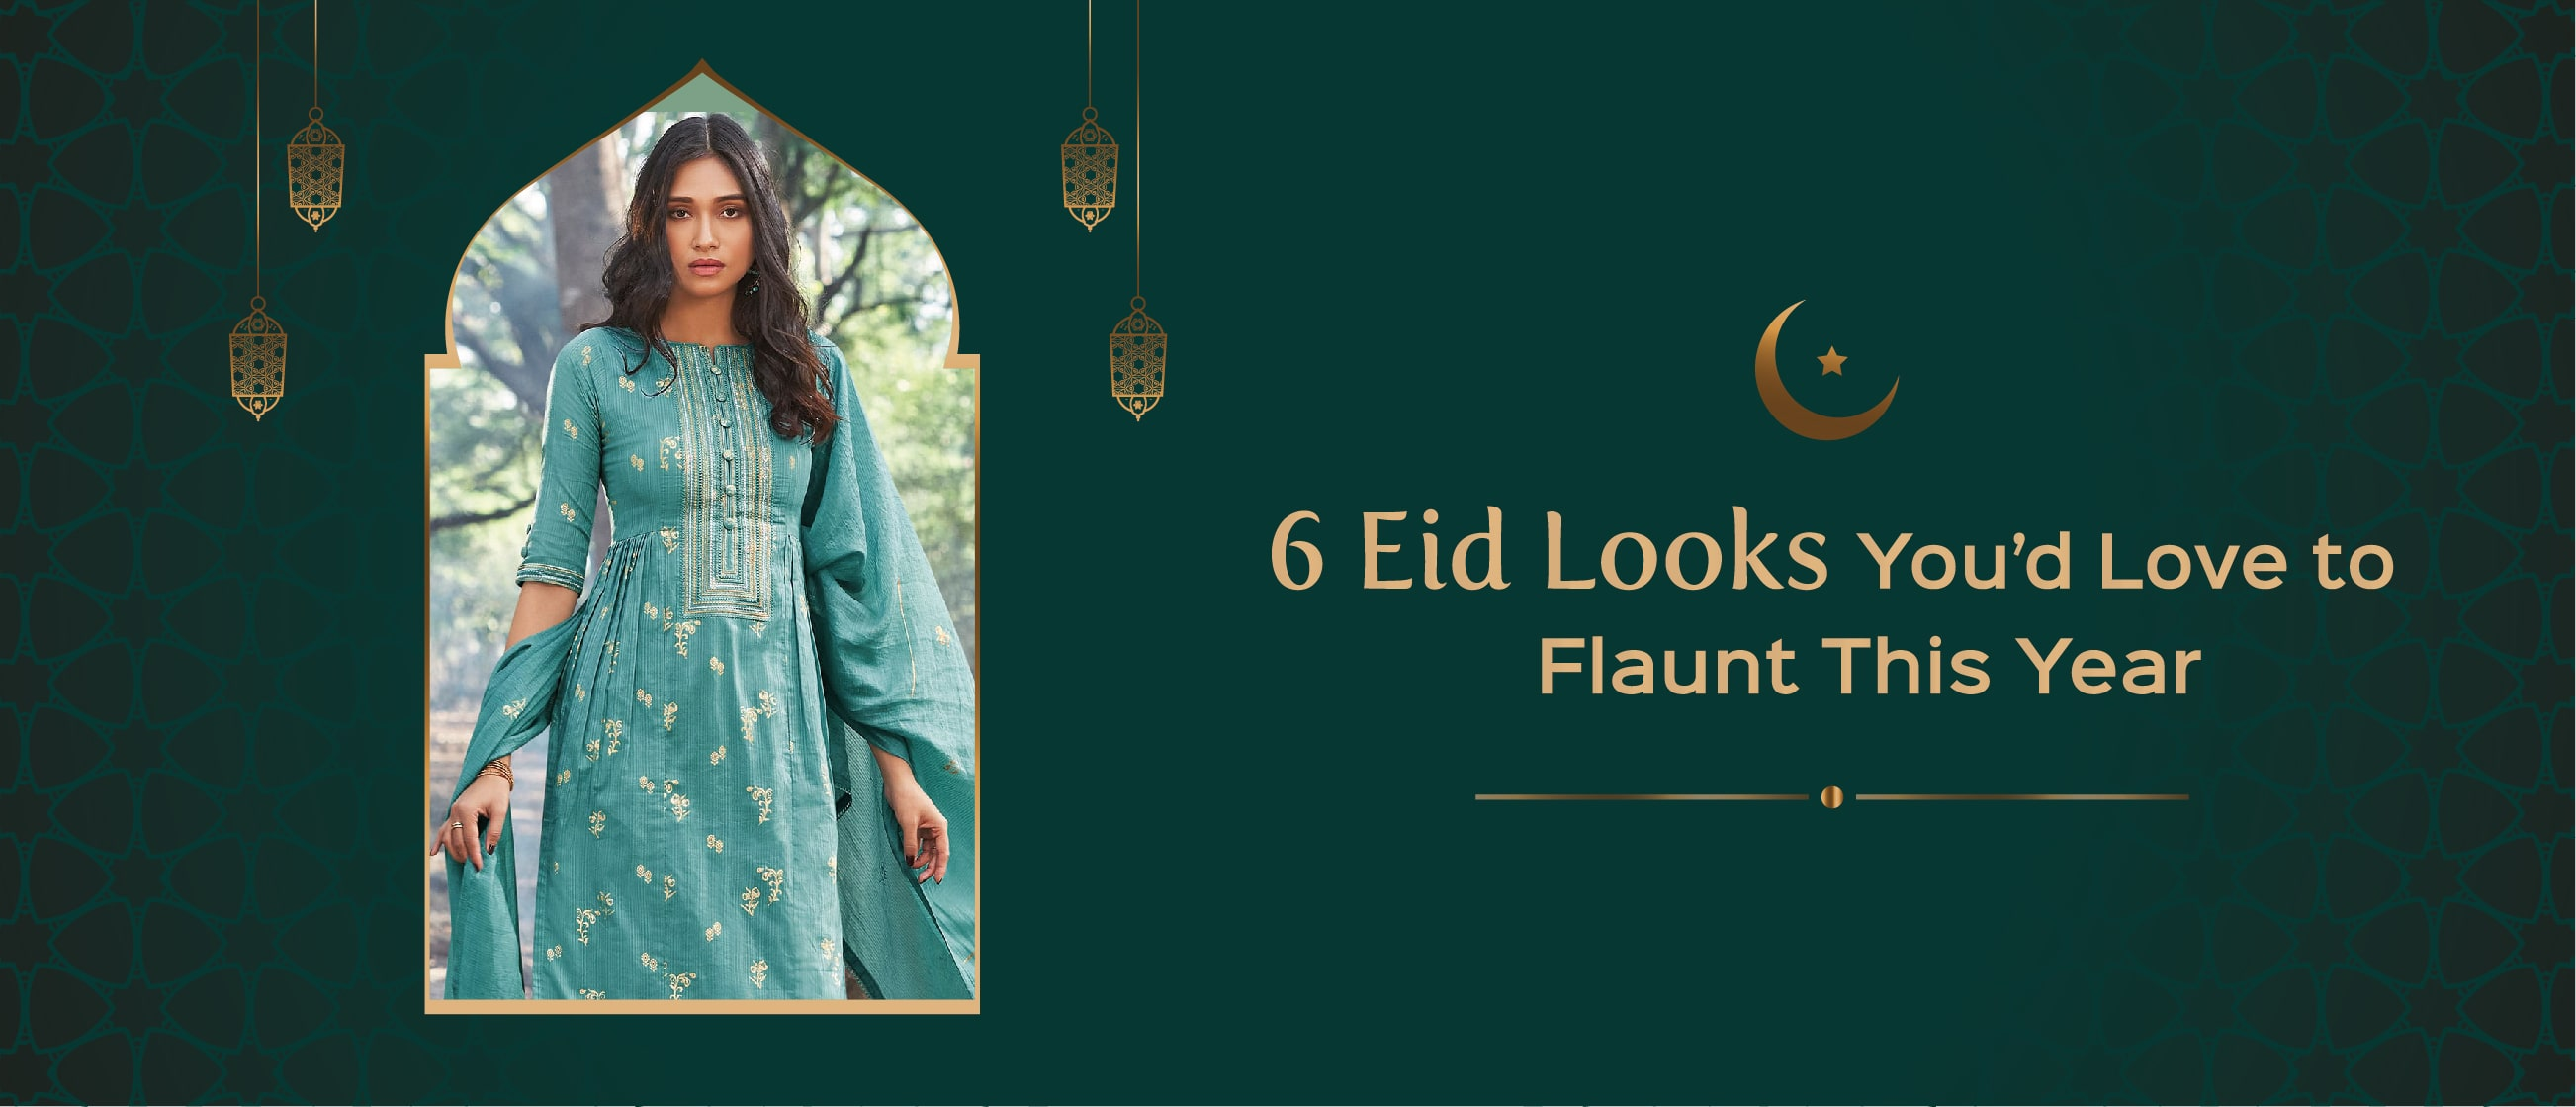 6 Eid Looks You'd Love to Flaunt This Year